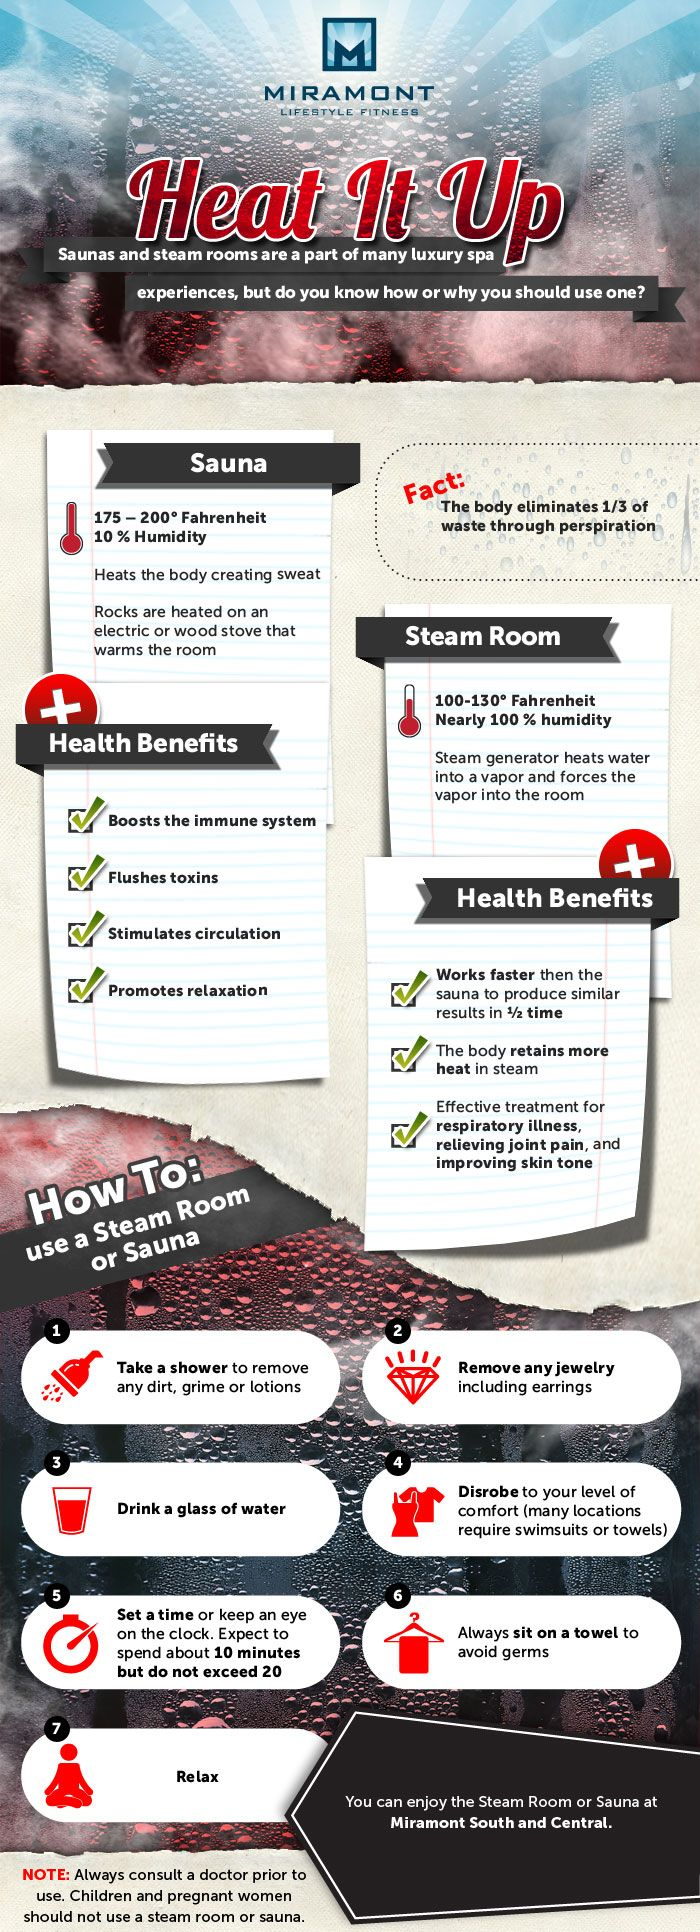 Detox The Body with Heat: Try a Sauna or Steam Room to Get Rid of Toxins.  Check Out the Many Health Benefits of Saunas and Steam Rooms!